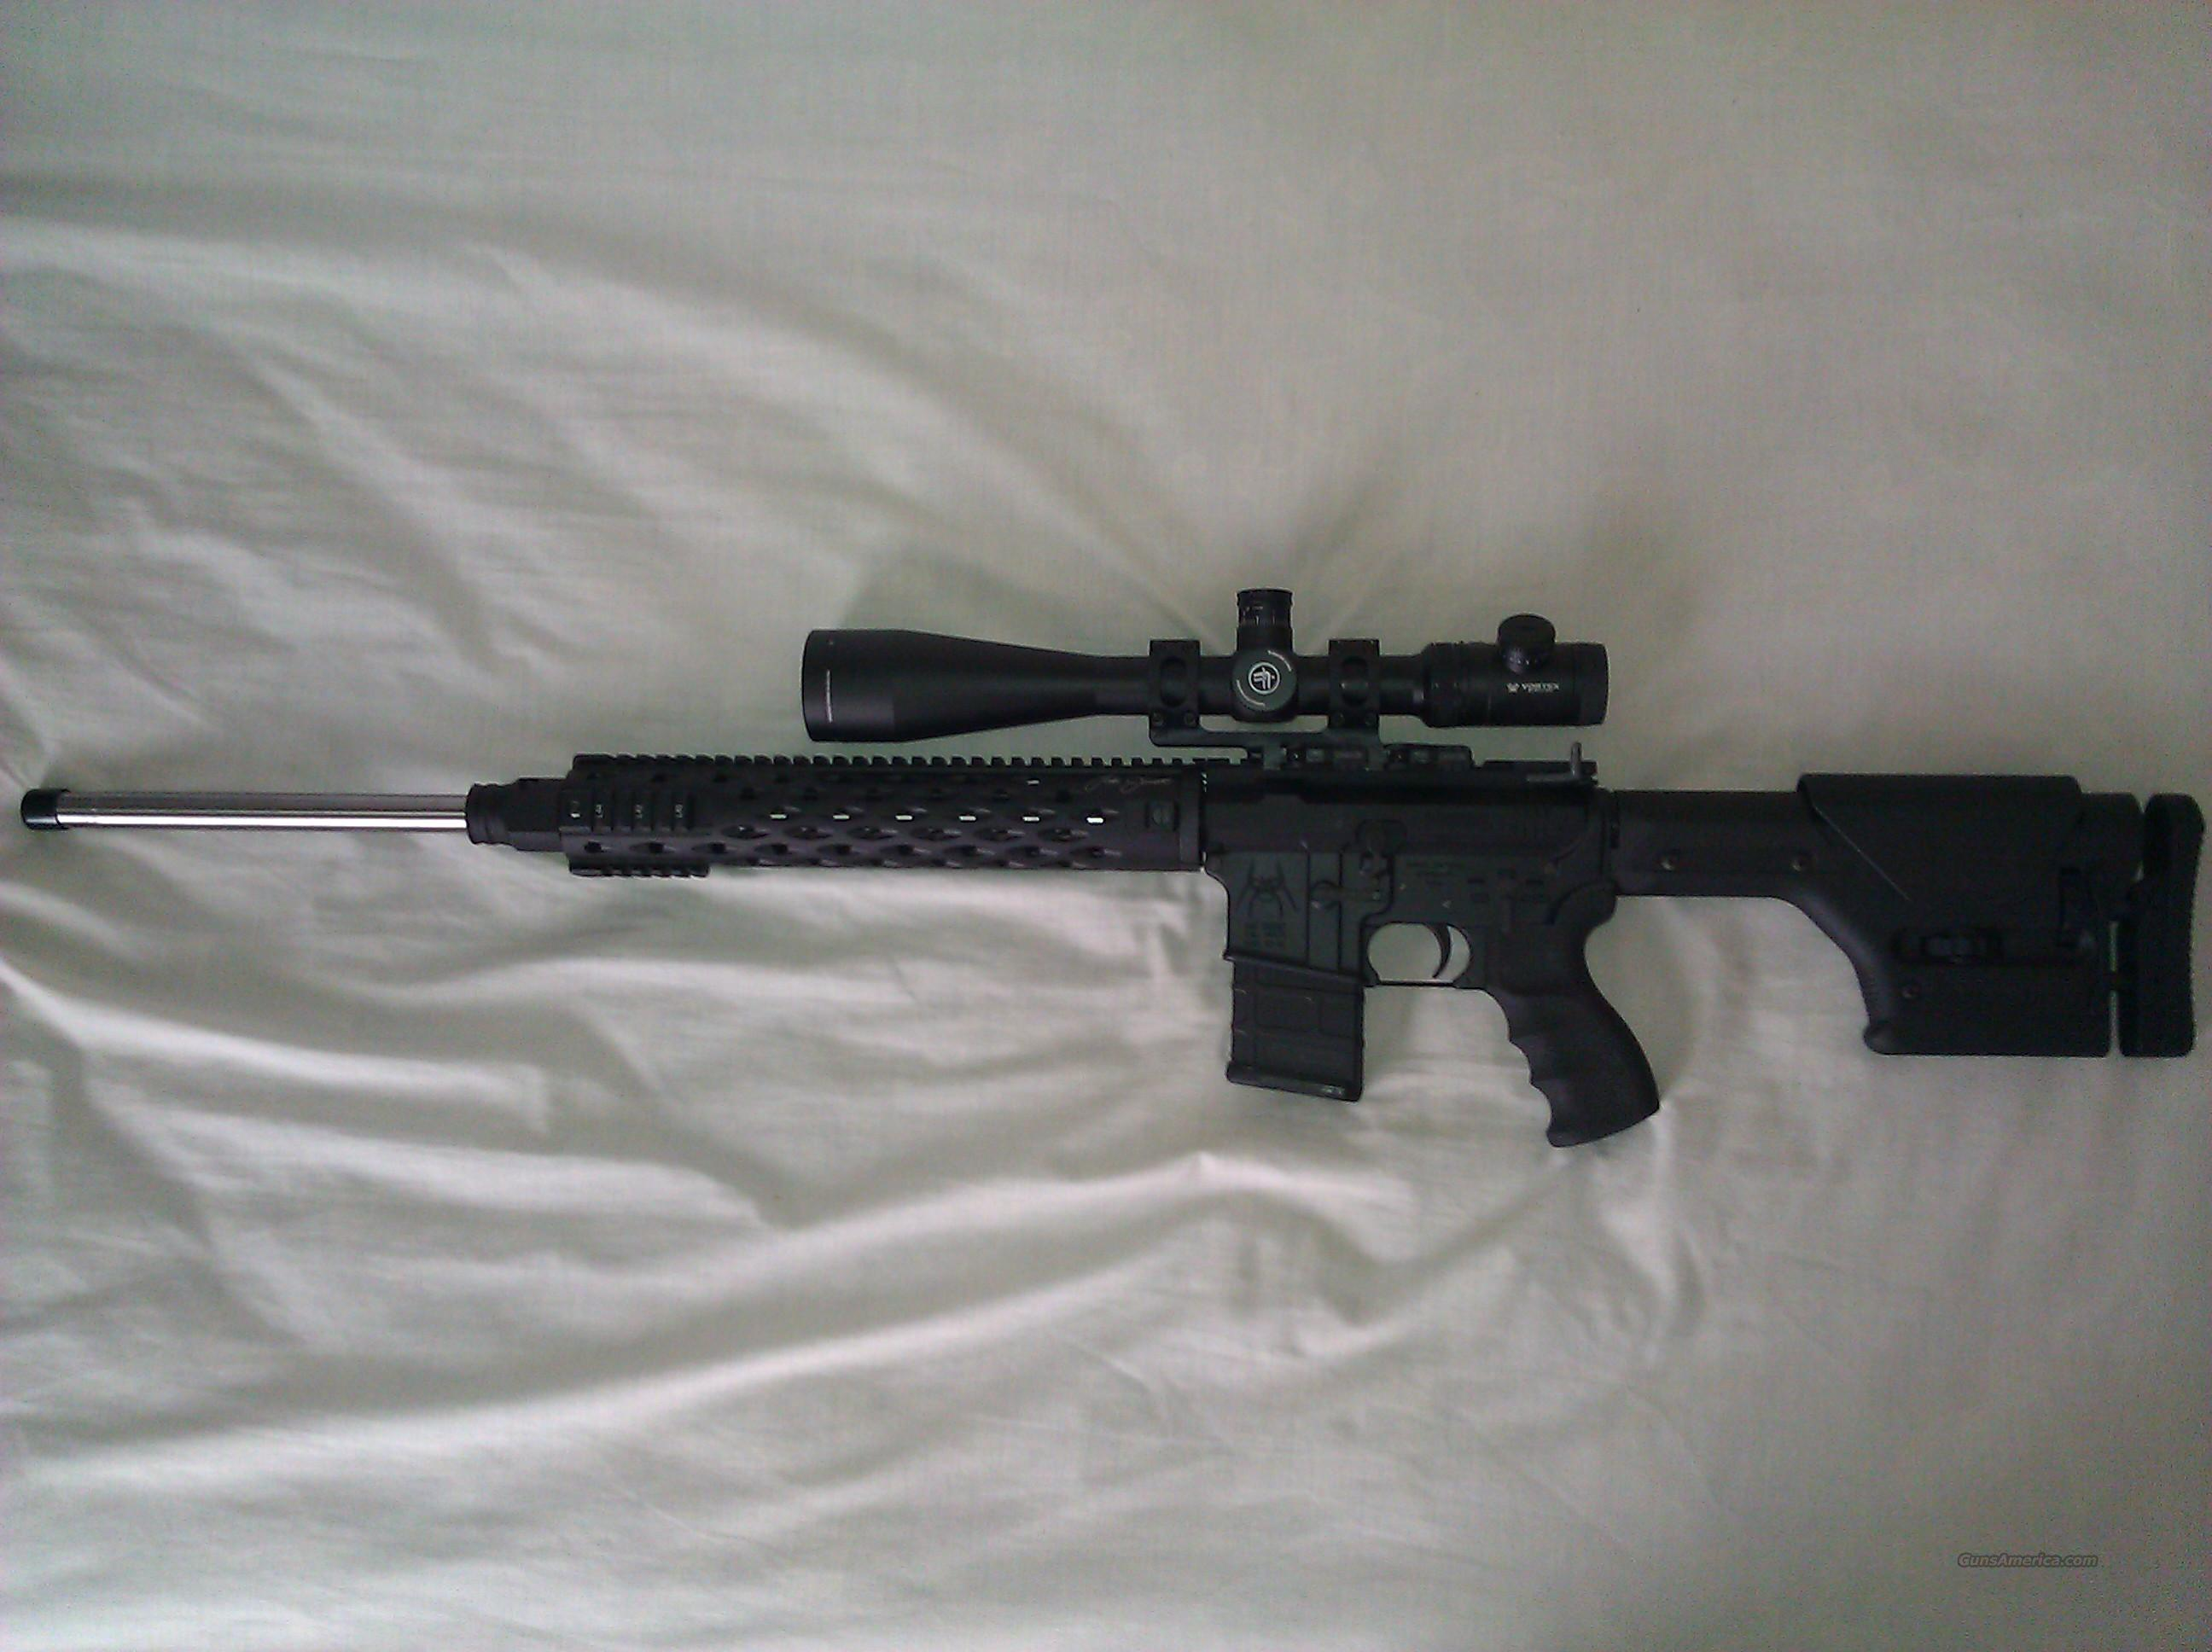 6.5 Grendel Long Range Precision AR-15  Guns > Rifles > AR-15 Rifles - Small Manufacturers > Complete Rifle